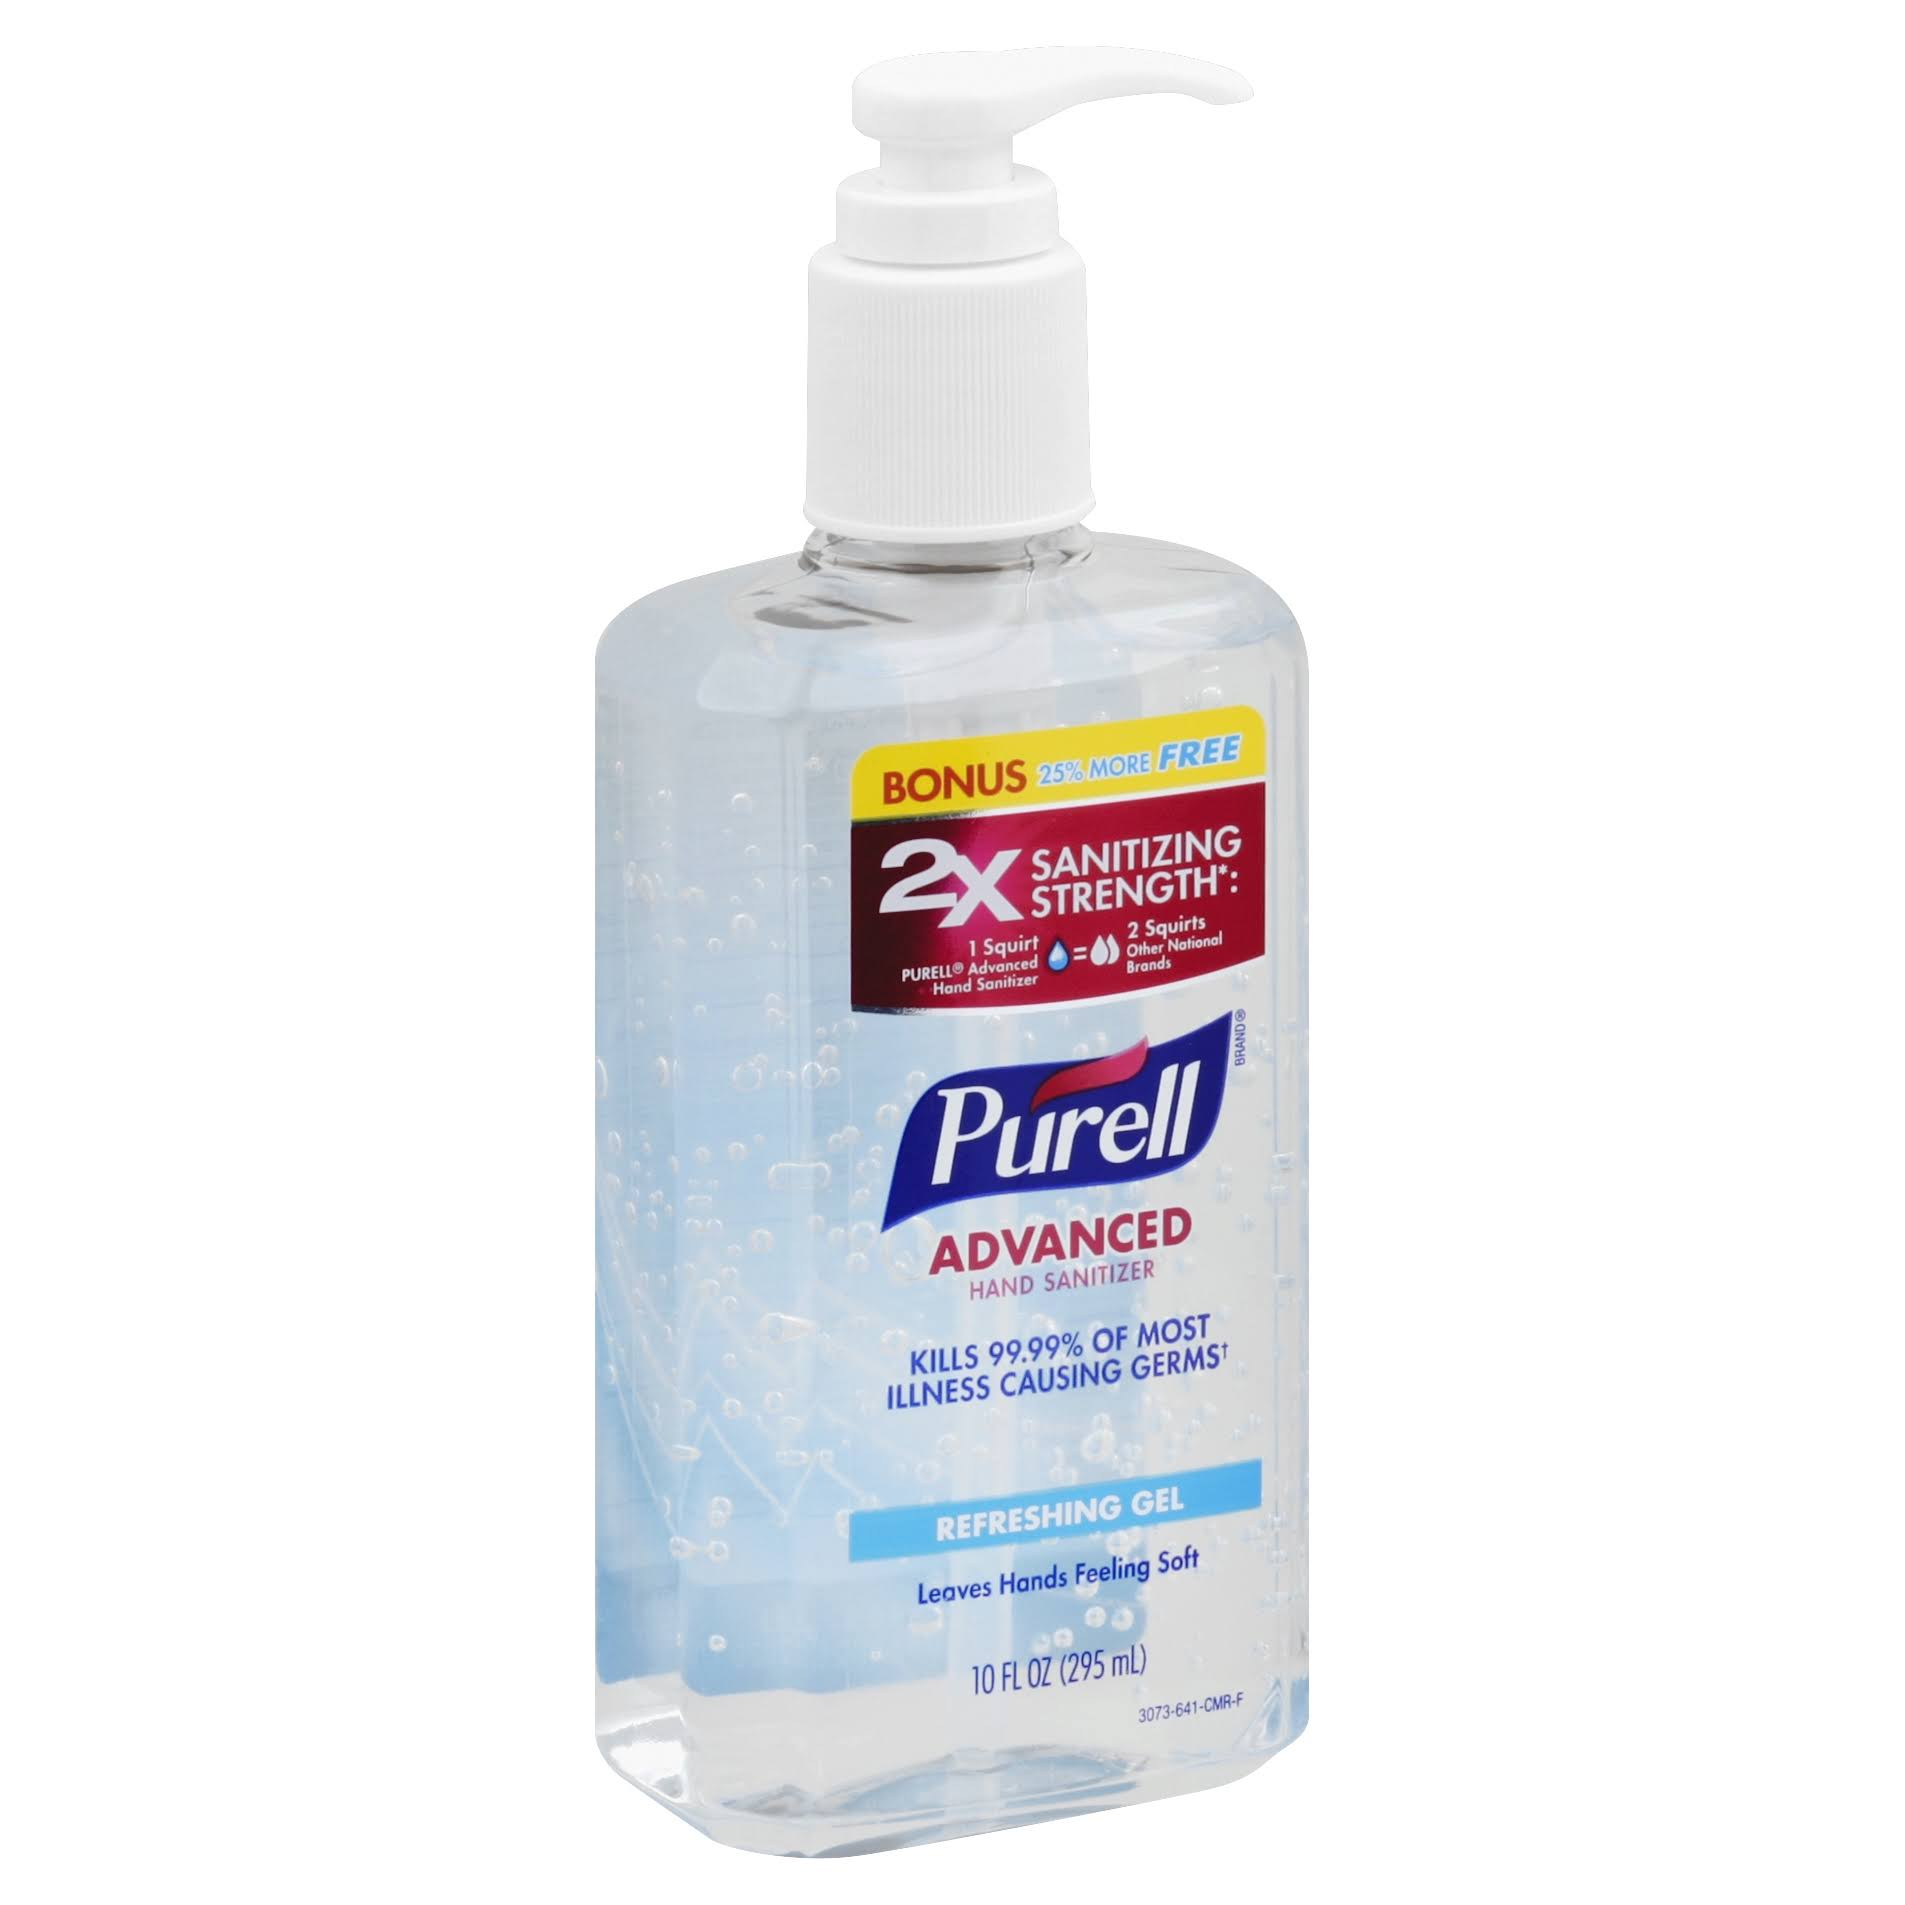 Purell Advanced Hand Sanitizer Refreshing Gel - 10oz